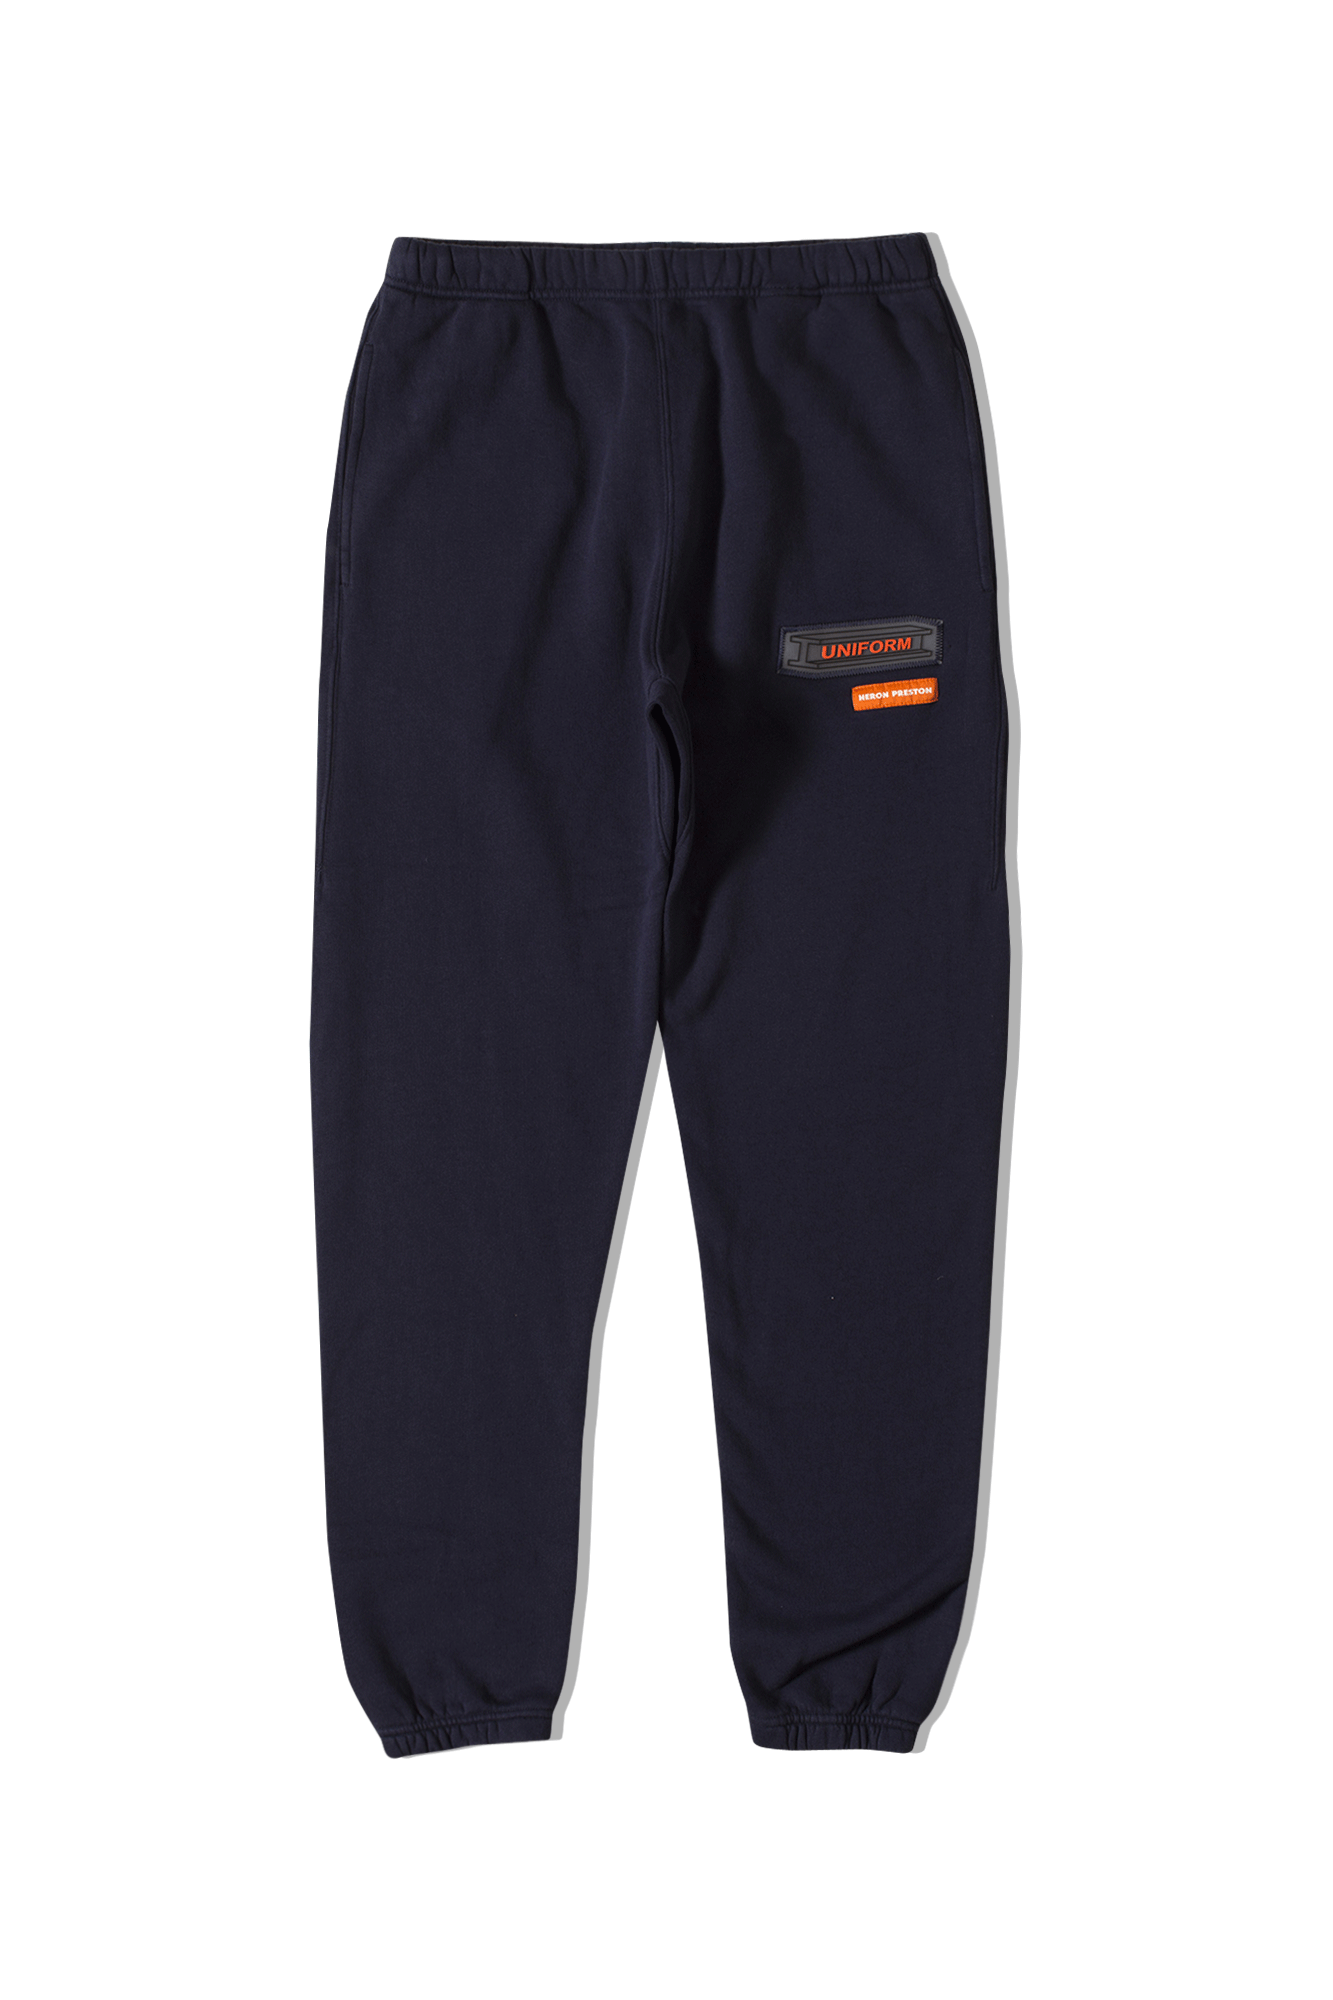 Heron Preston Pantaloni sportivi Slim Sweatpants Uniform Multicolore HMCH005F19#808013-#3288#XXS - One Block Down